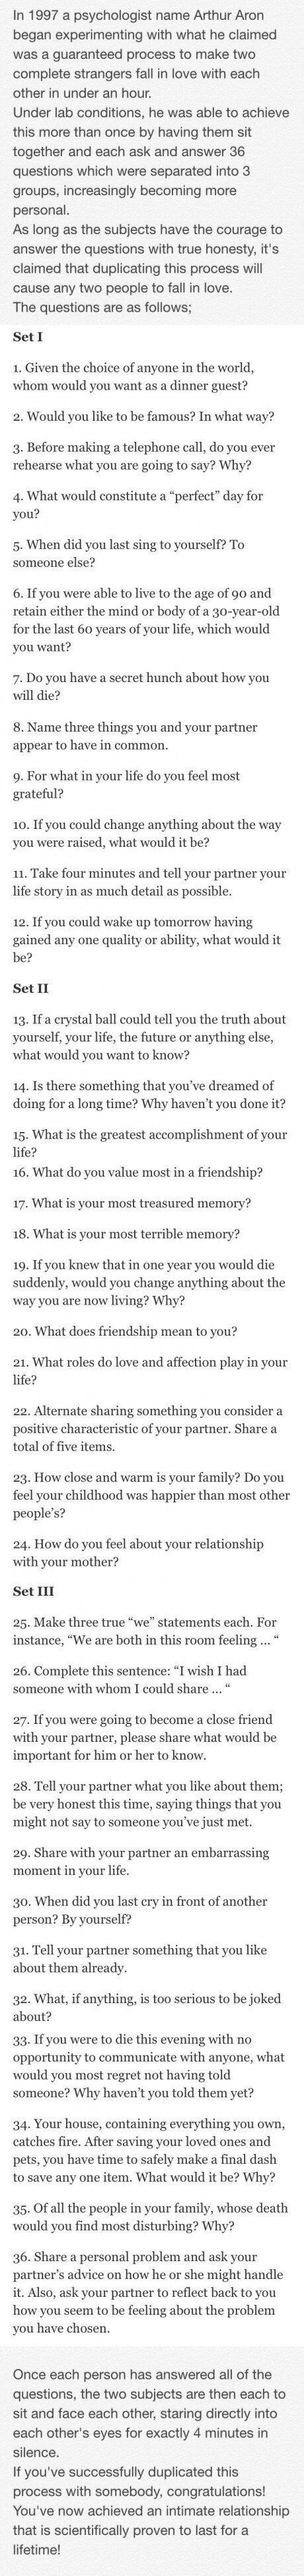 Think about answers for your characters; this is really helpful